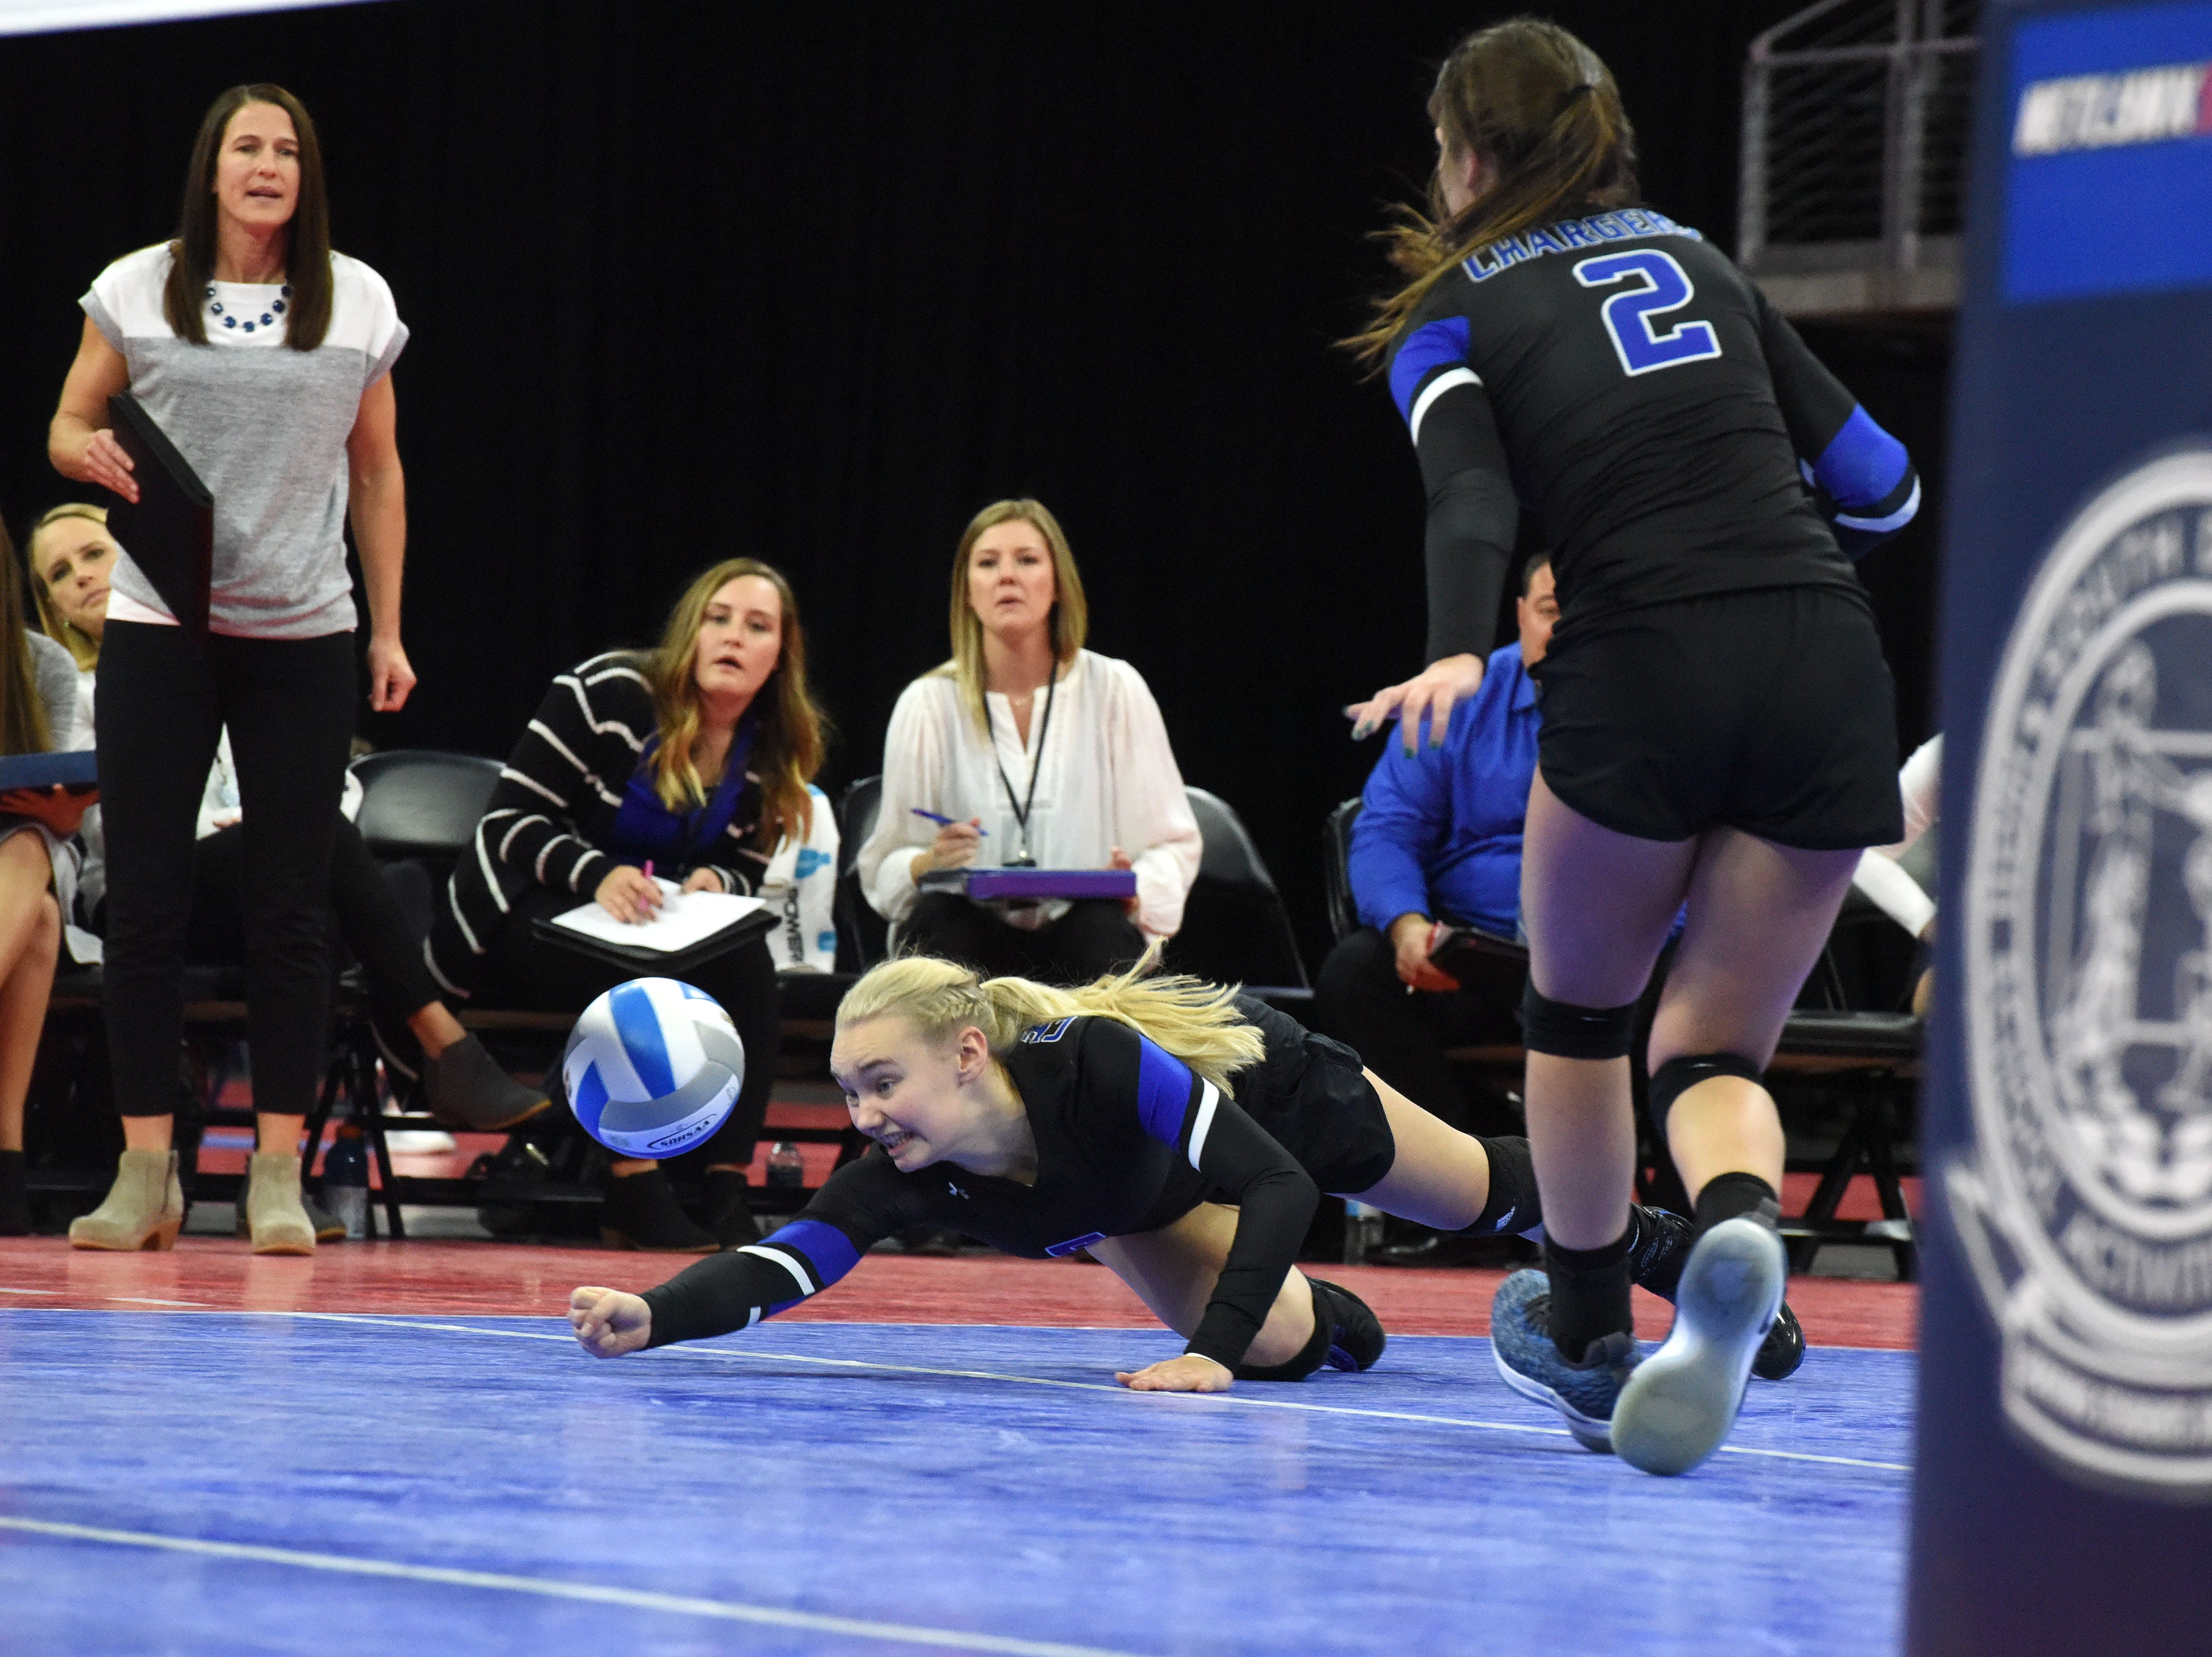 Sioux Falls Christian's Kelsi Heard (5) bumps the ball during a match against Miller, Saturday, Nov. 17, 2018, at the Denny Sanford Premier Center in Sioux Falls, S.D.